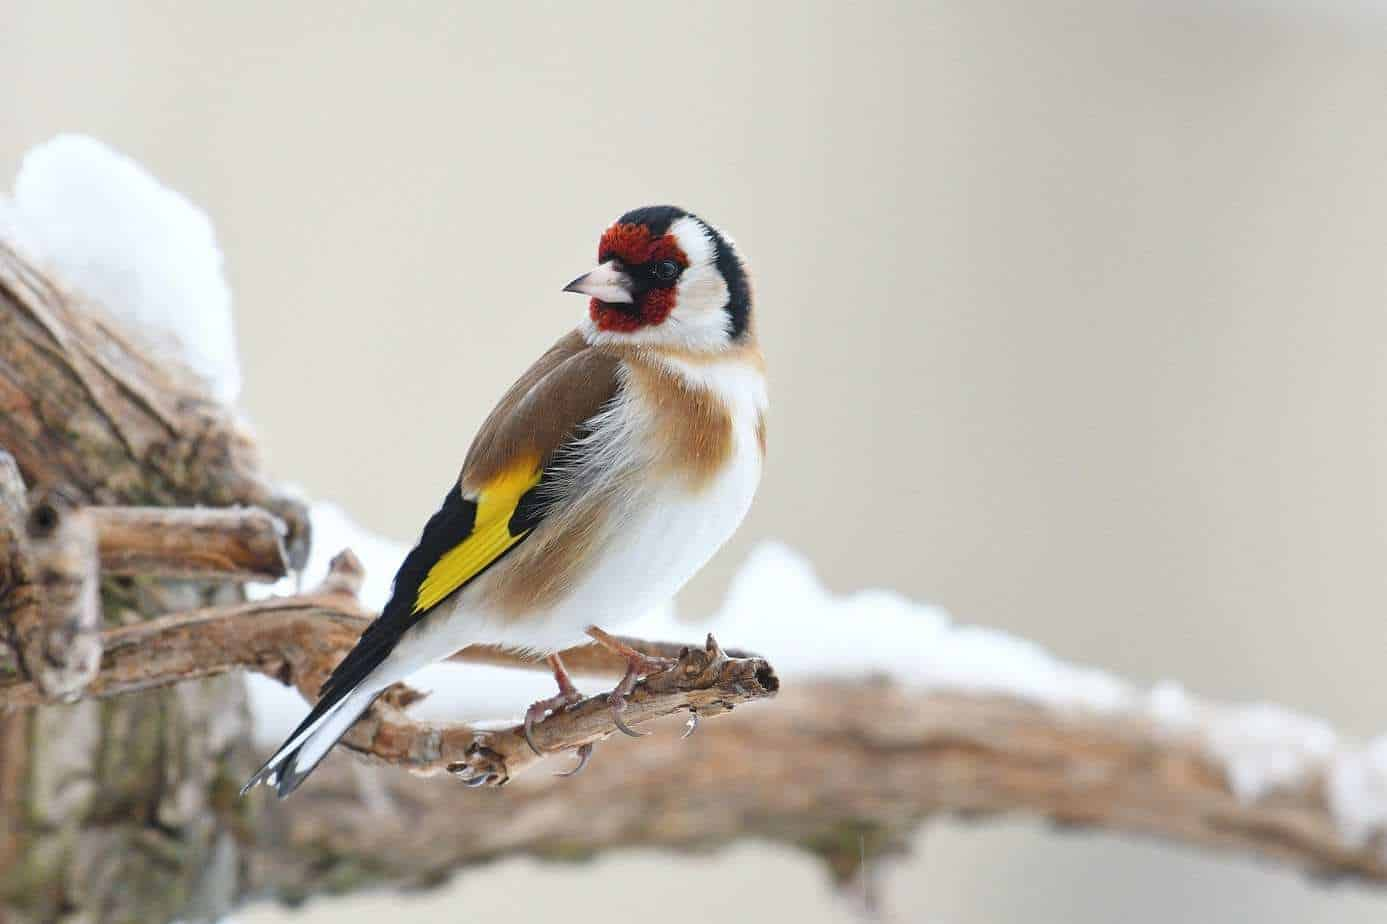 a goldfinch sat on a snowy branch